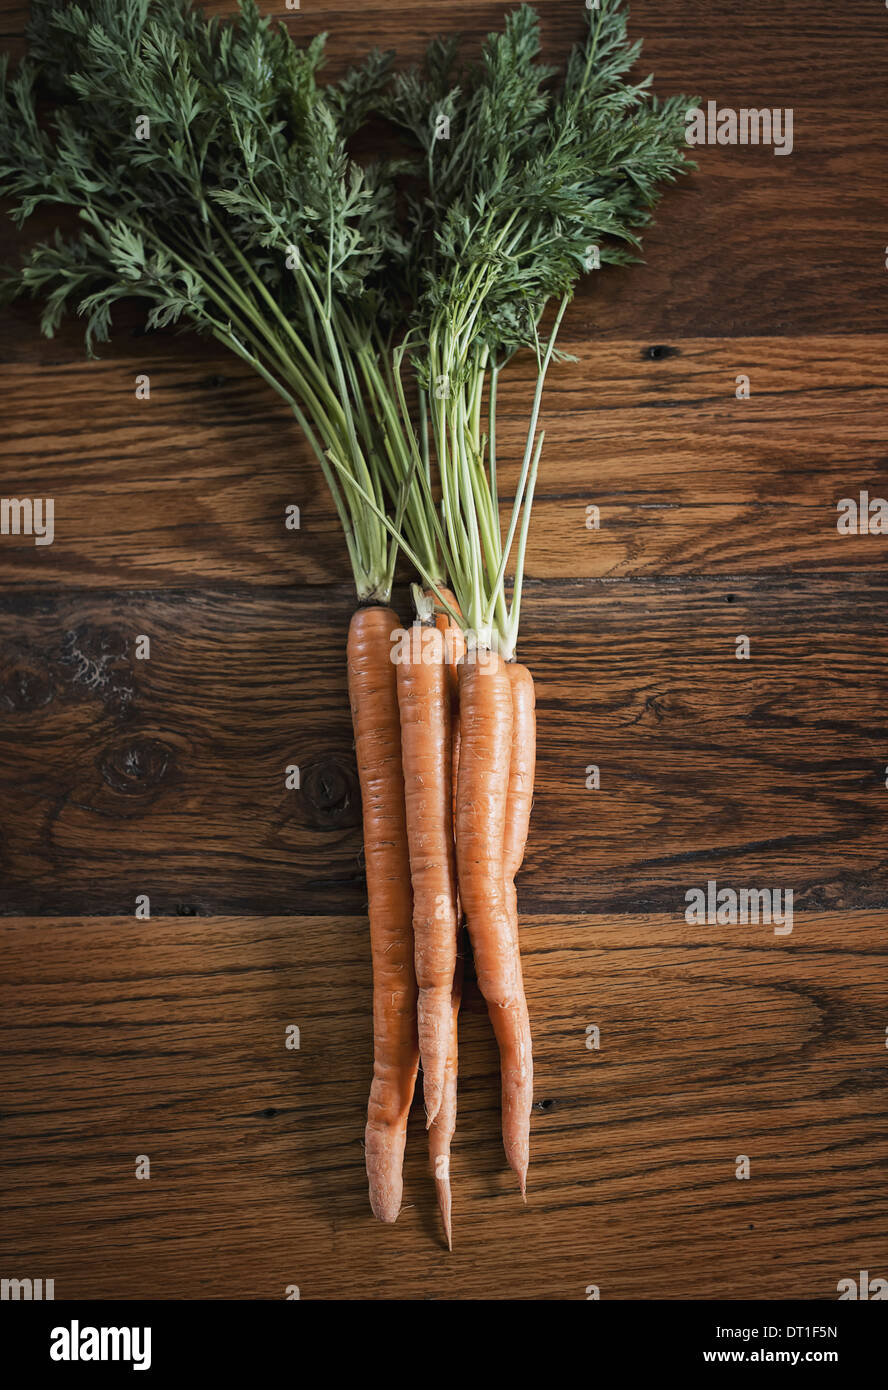 A small bunch of carrots with green leafy tops freshly harvested lying on a tabletop - Stock Image